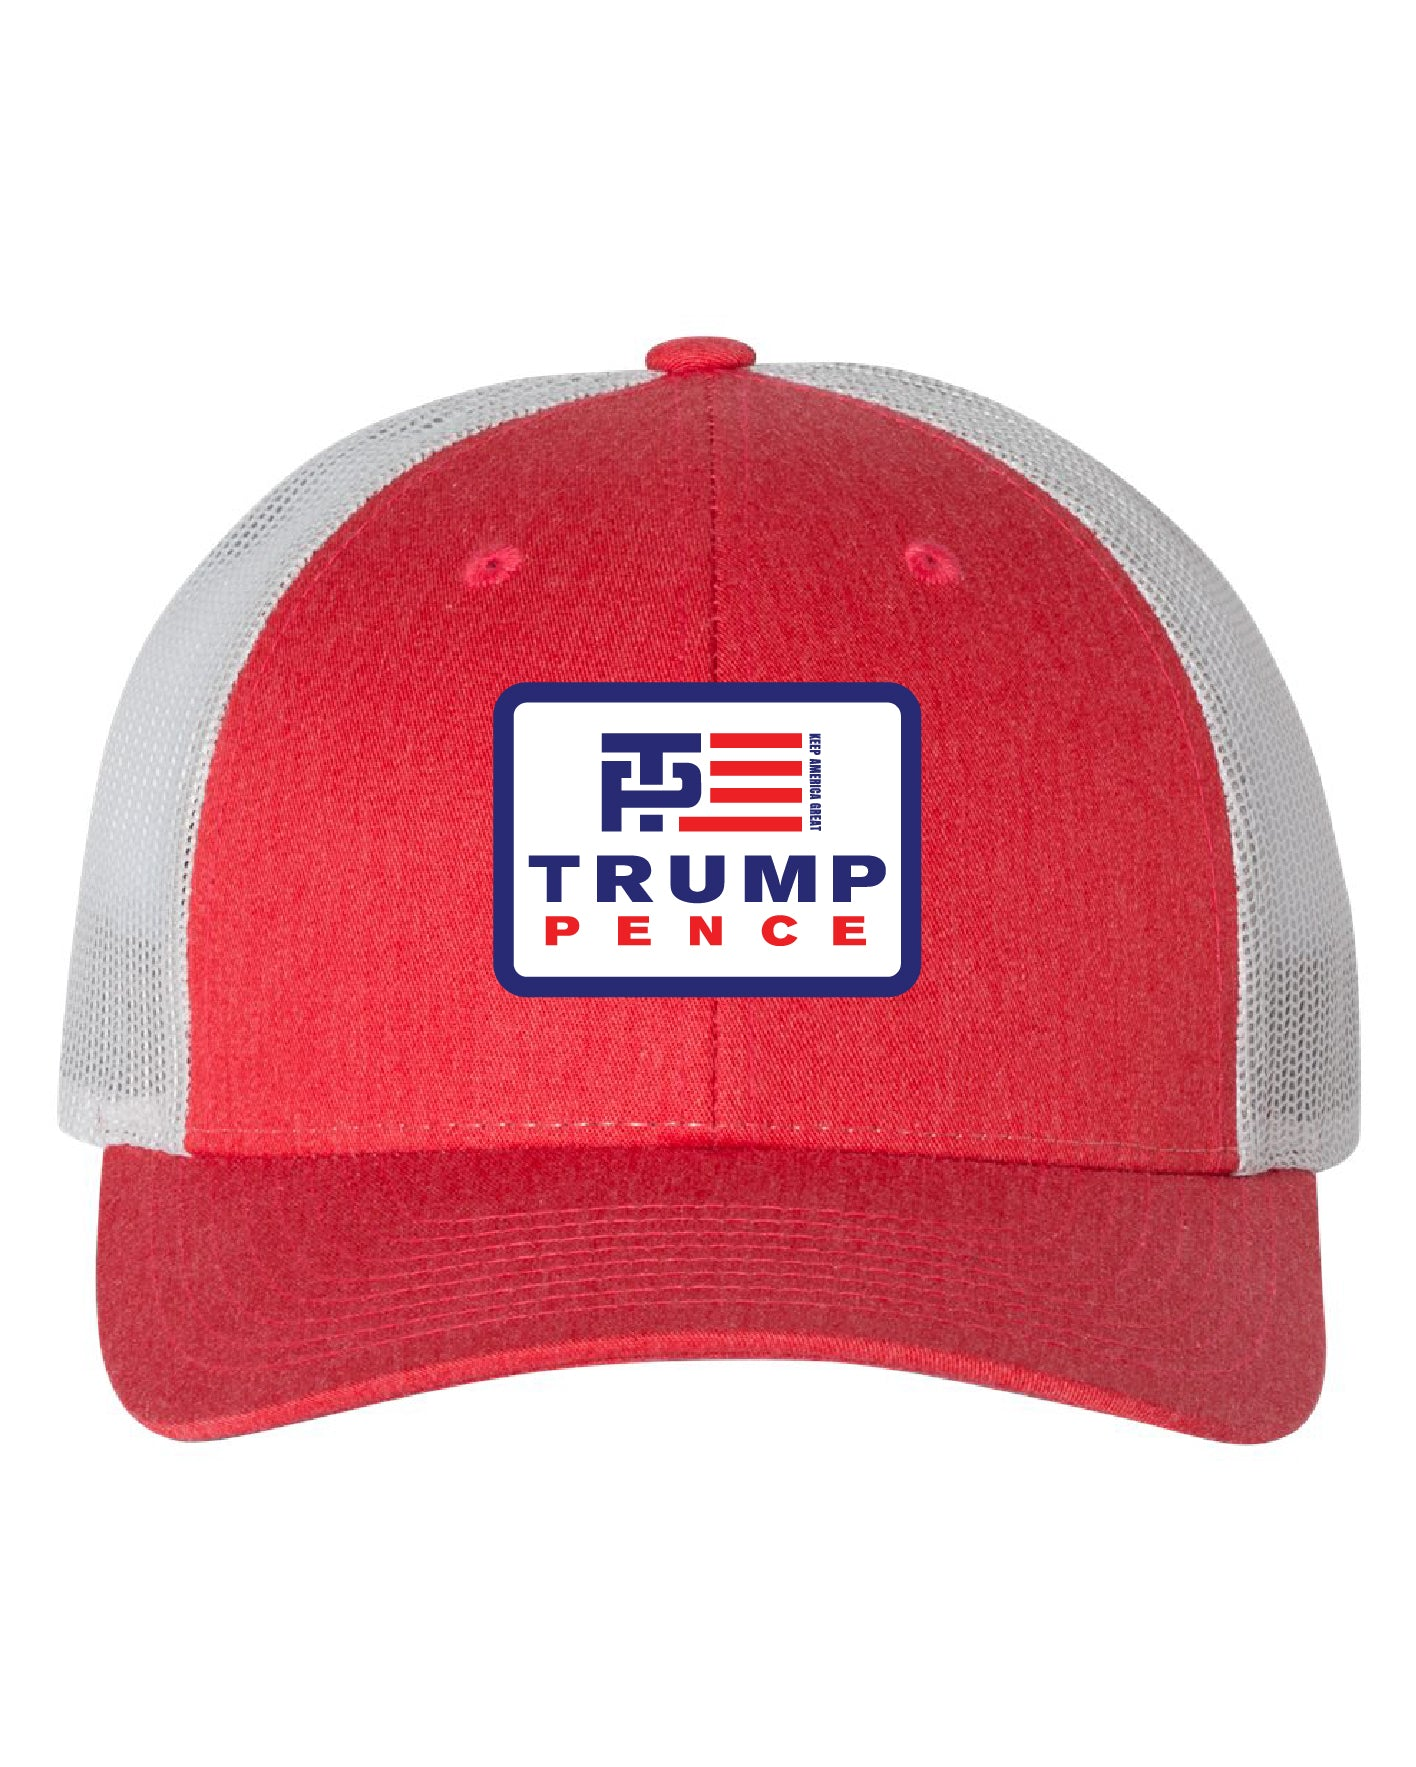 Trump/Pence Red/White Trucker Hat